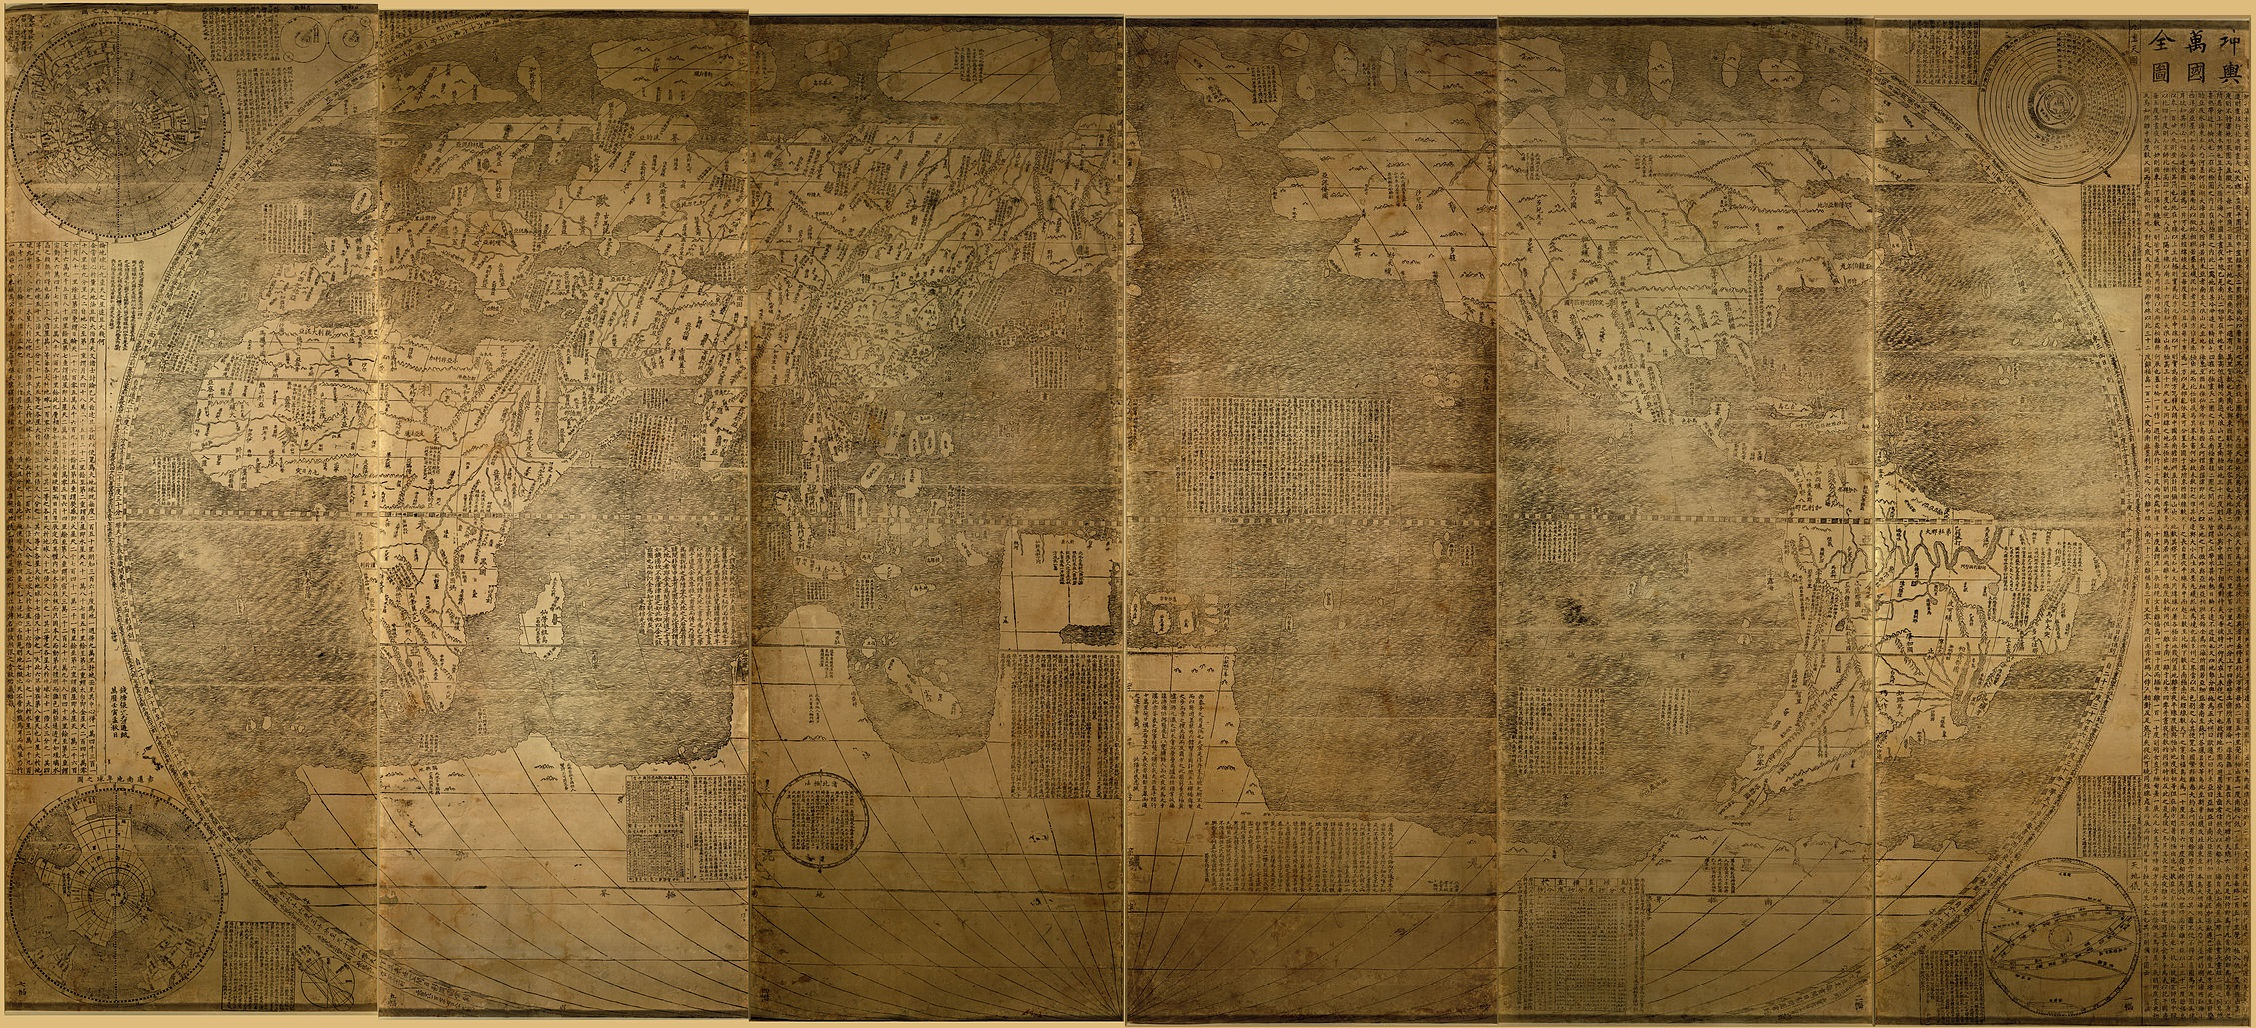 Mosaic photo of the ca. 1602 six plate, Kunyu Wanguo Quantu 圖全國萬輿坤 and second rendition of Matteo Ricci's world map (Library of Congress)